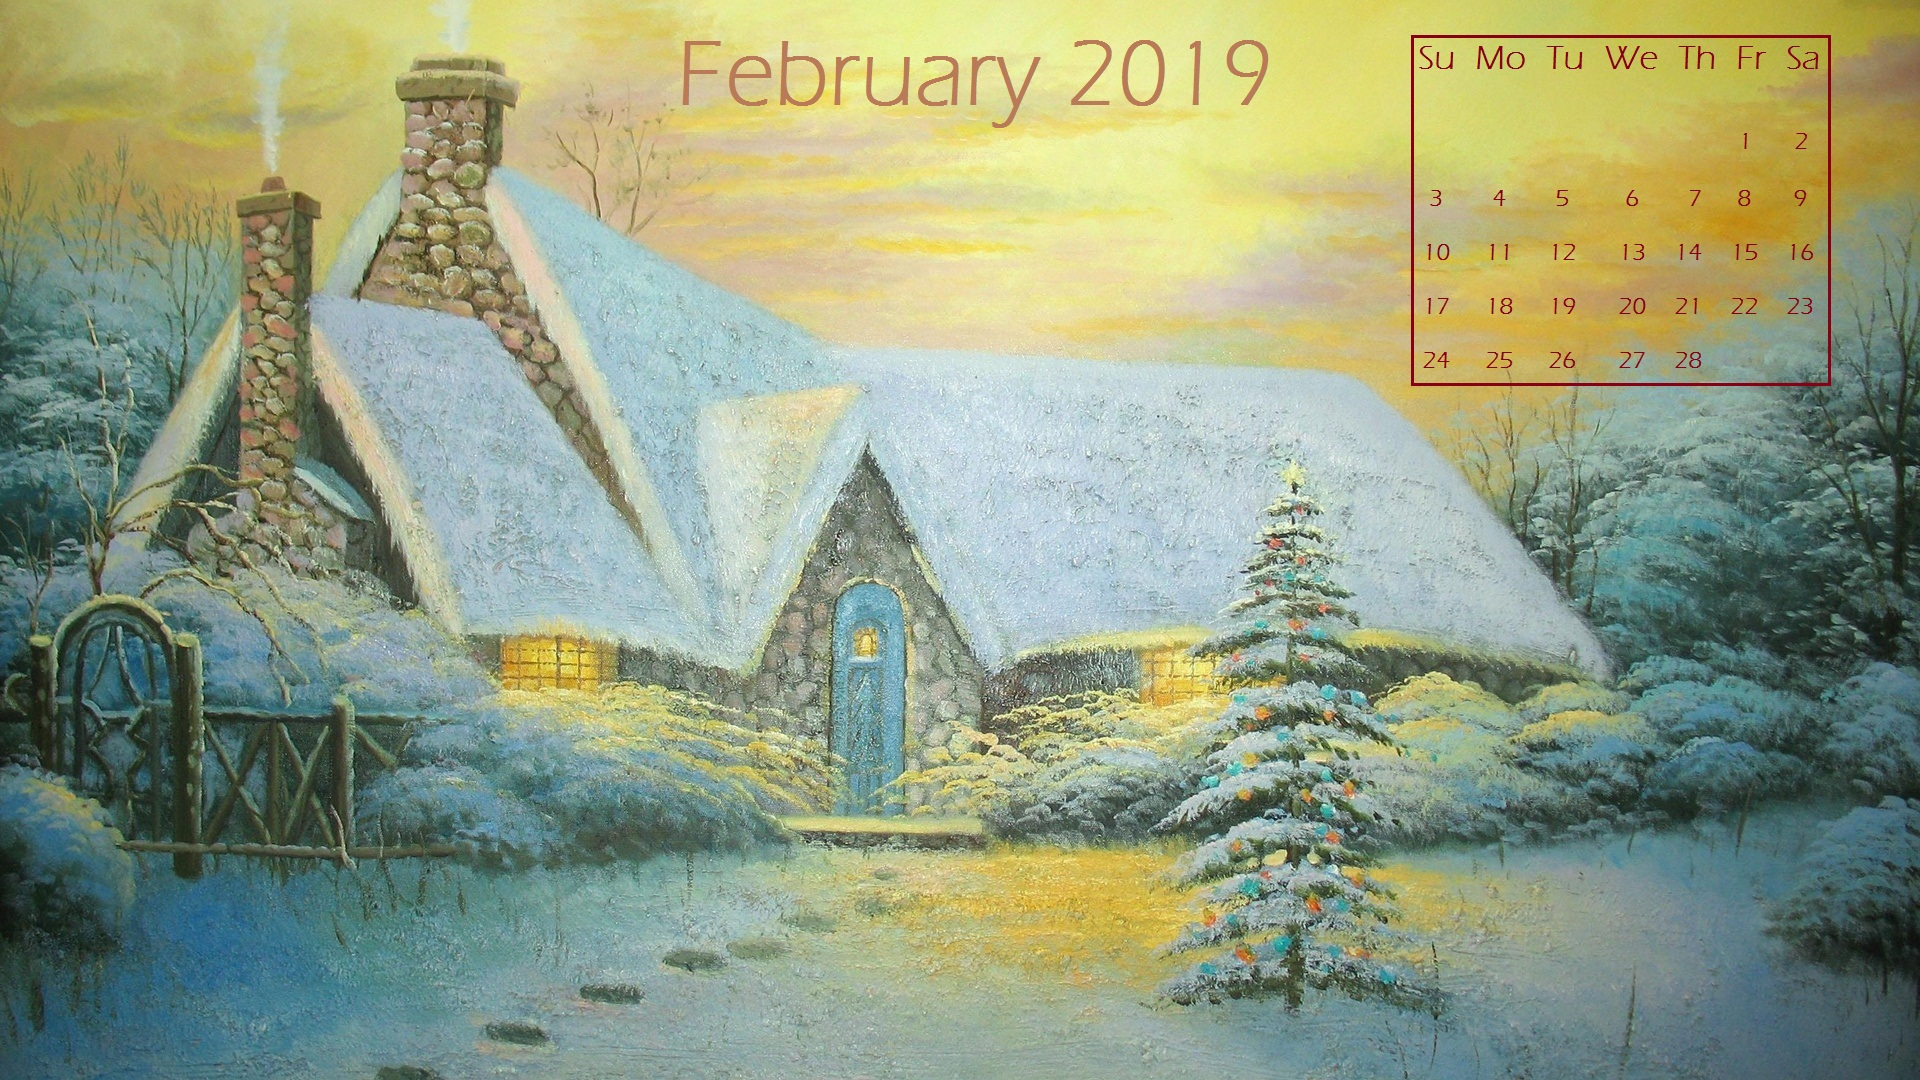 February 2019 Snow Desktop Calendar wallpaper